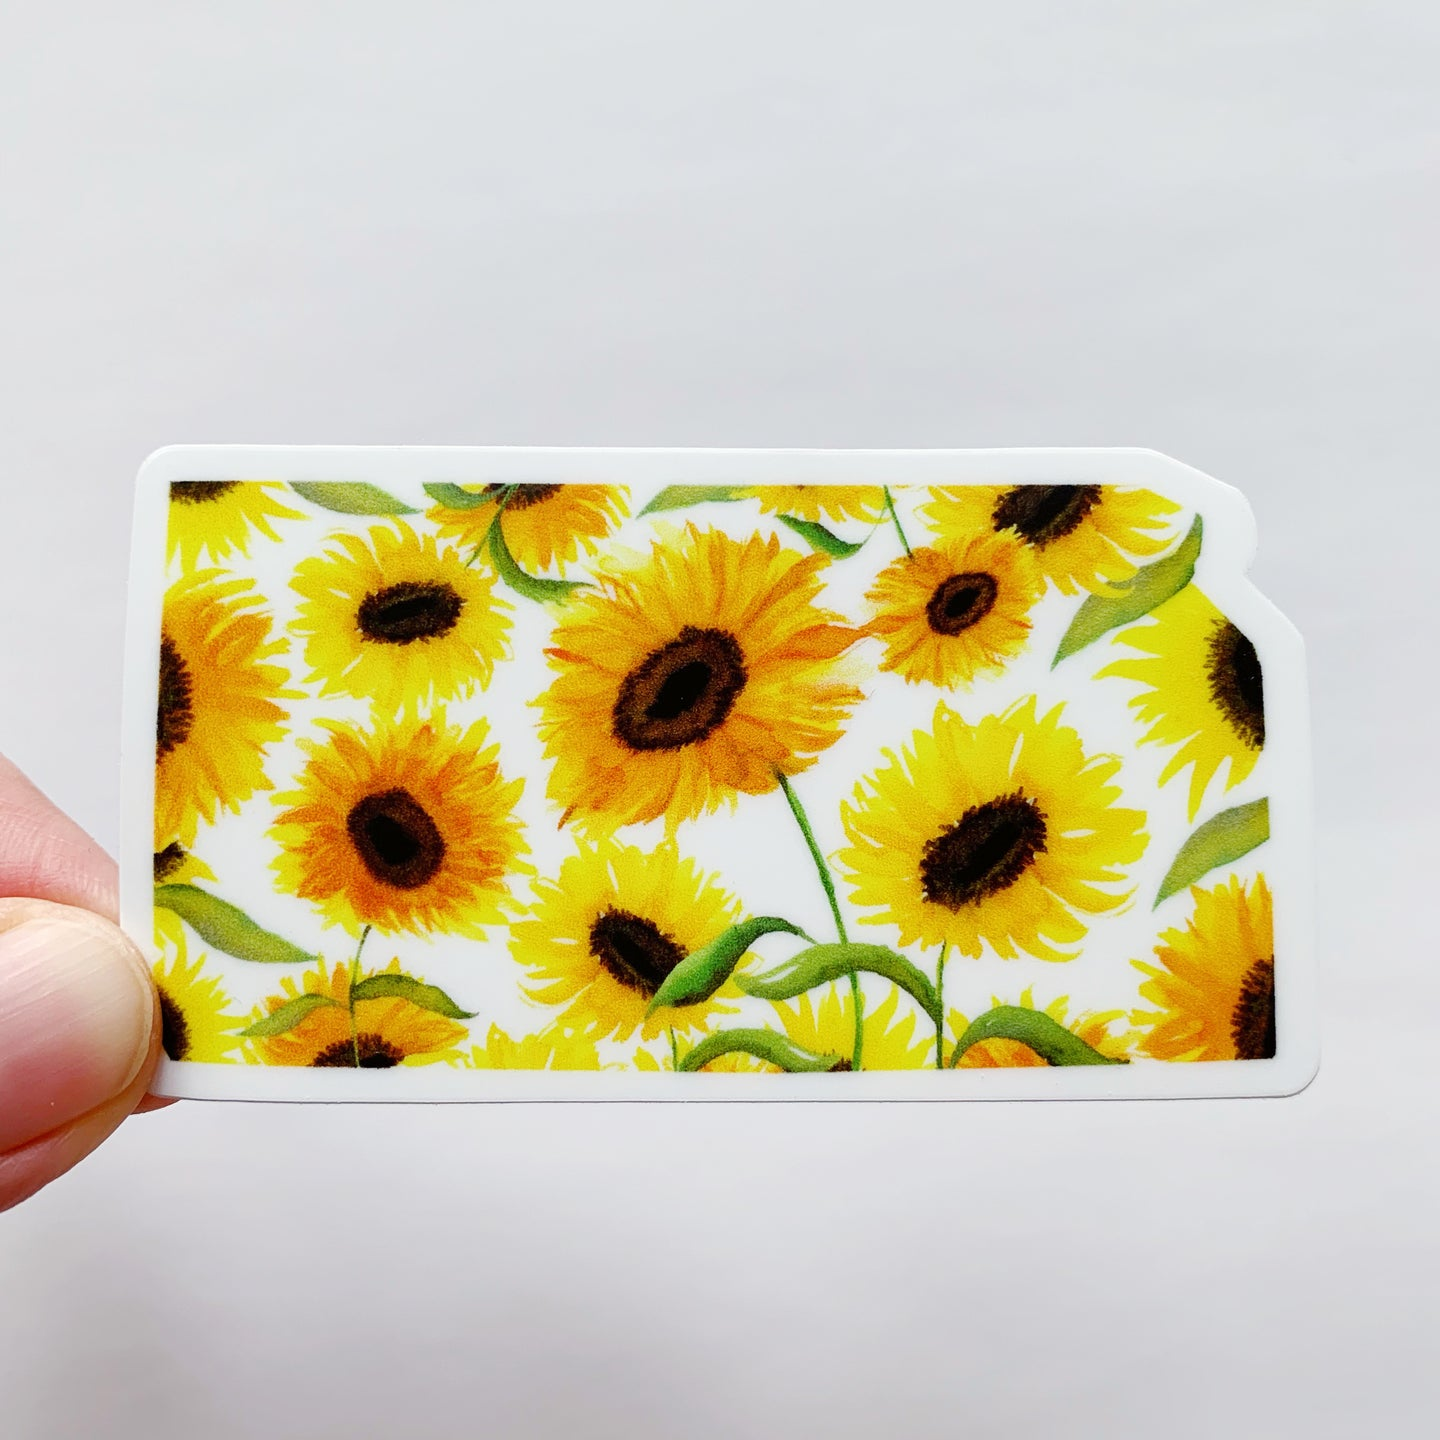 Kansas State Watercolor Sunflowers Sticker Decal